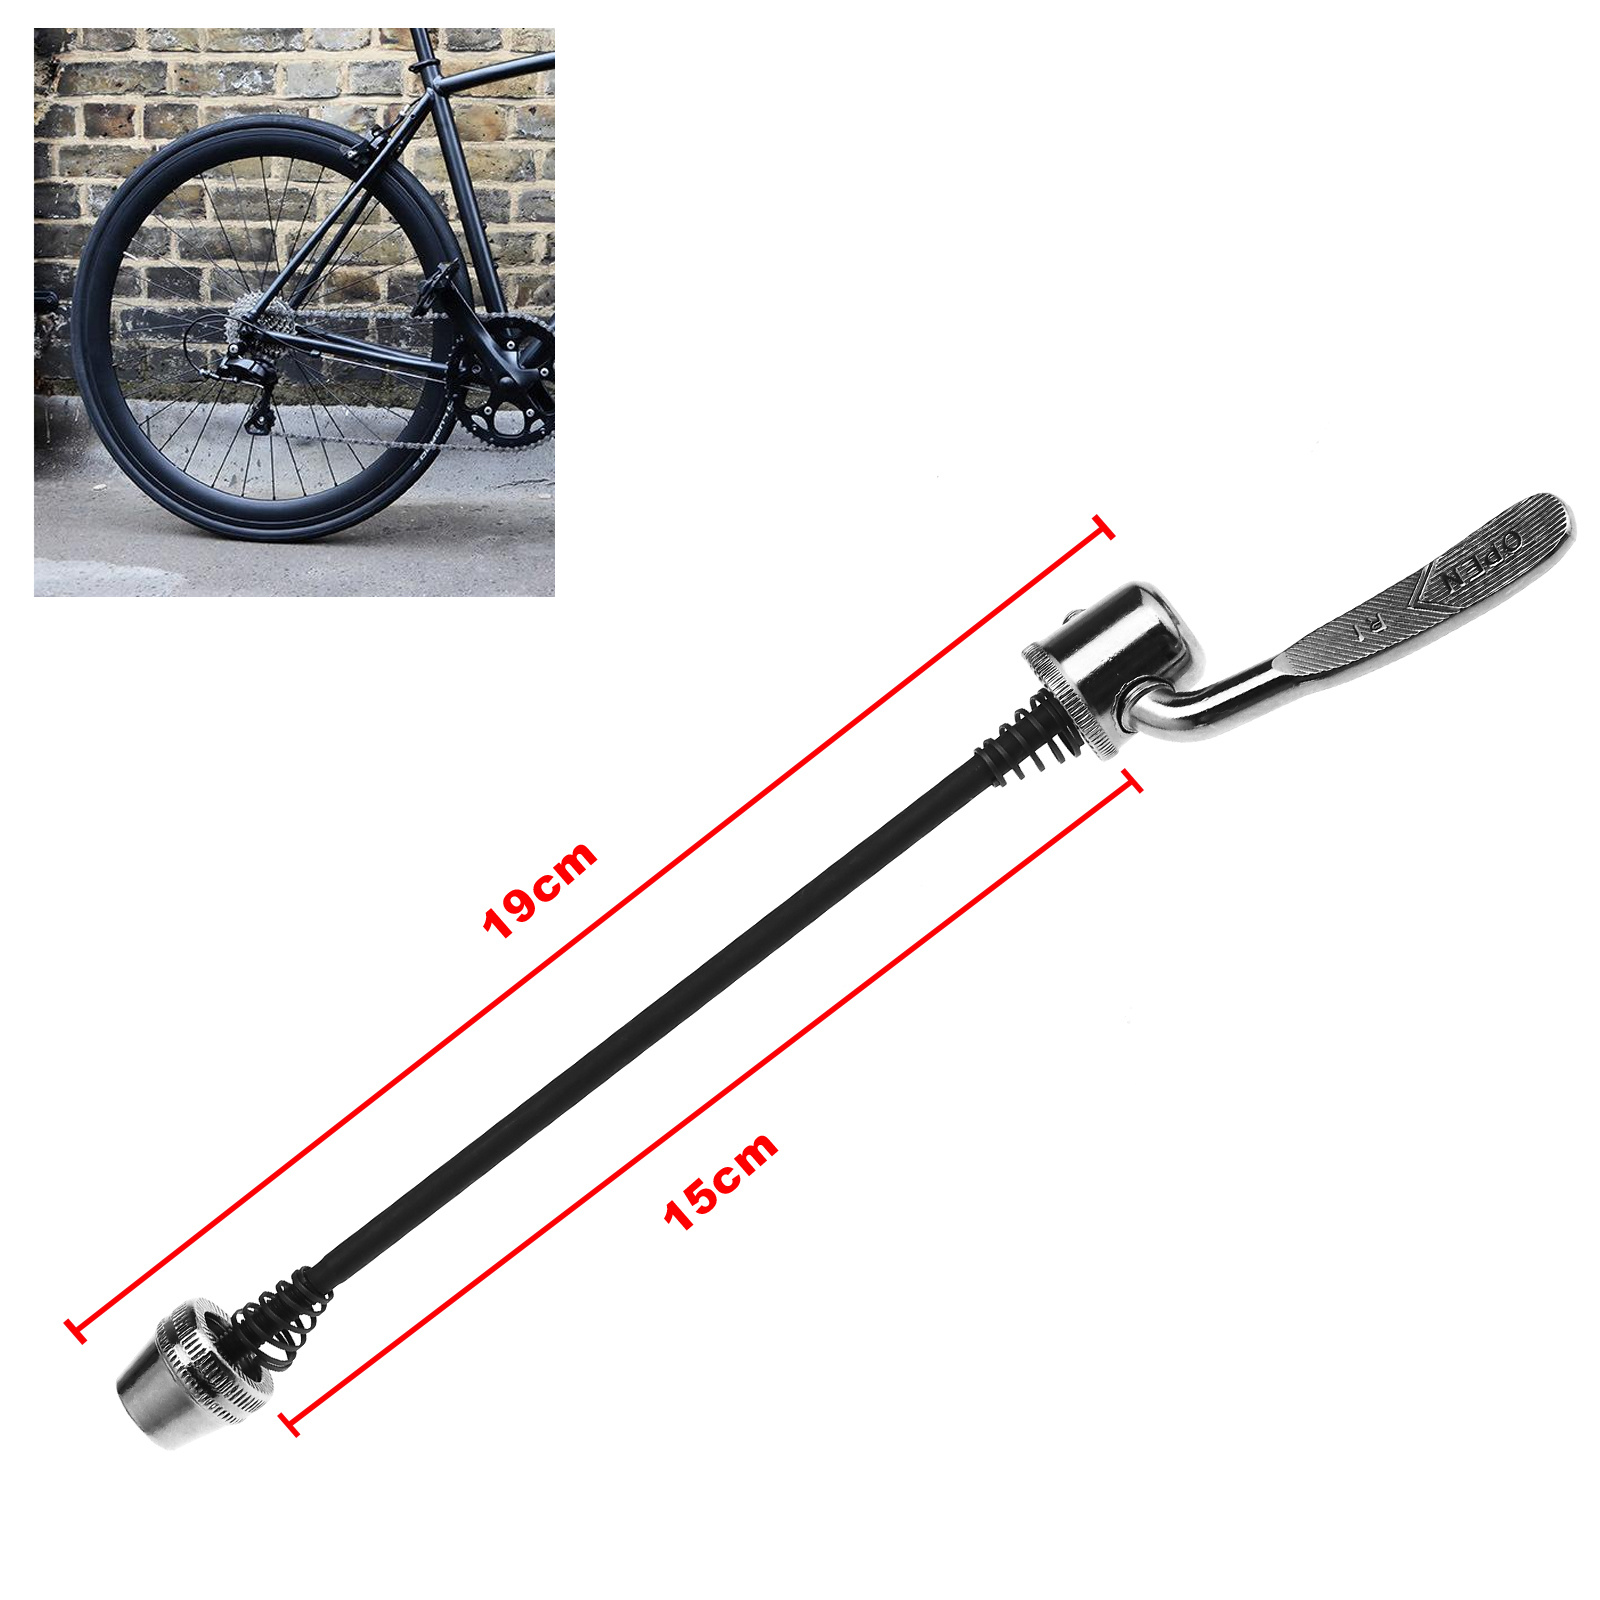 Road Quick Release Skewer Bicycle Bike Trainer Cycling Tool Parts 19cm